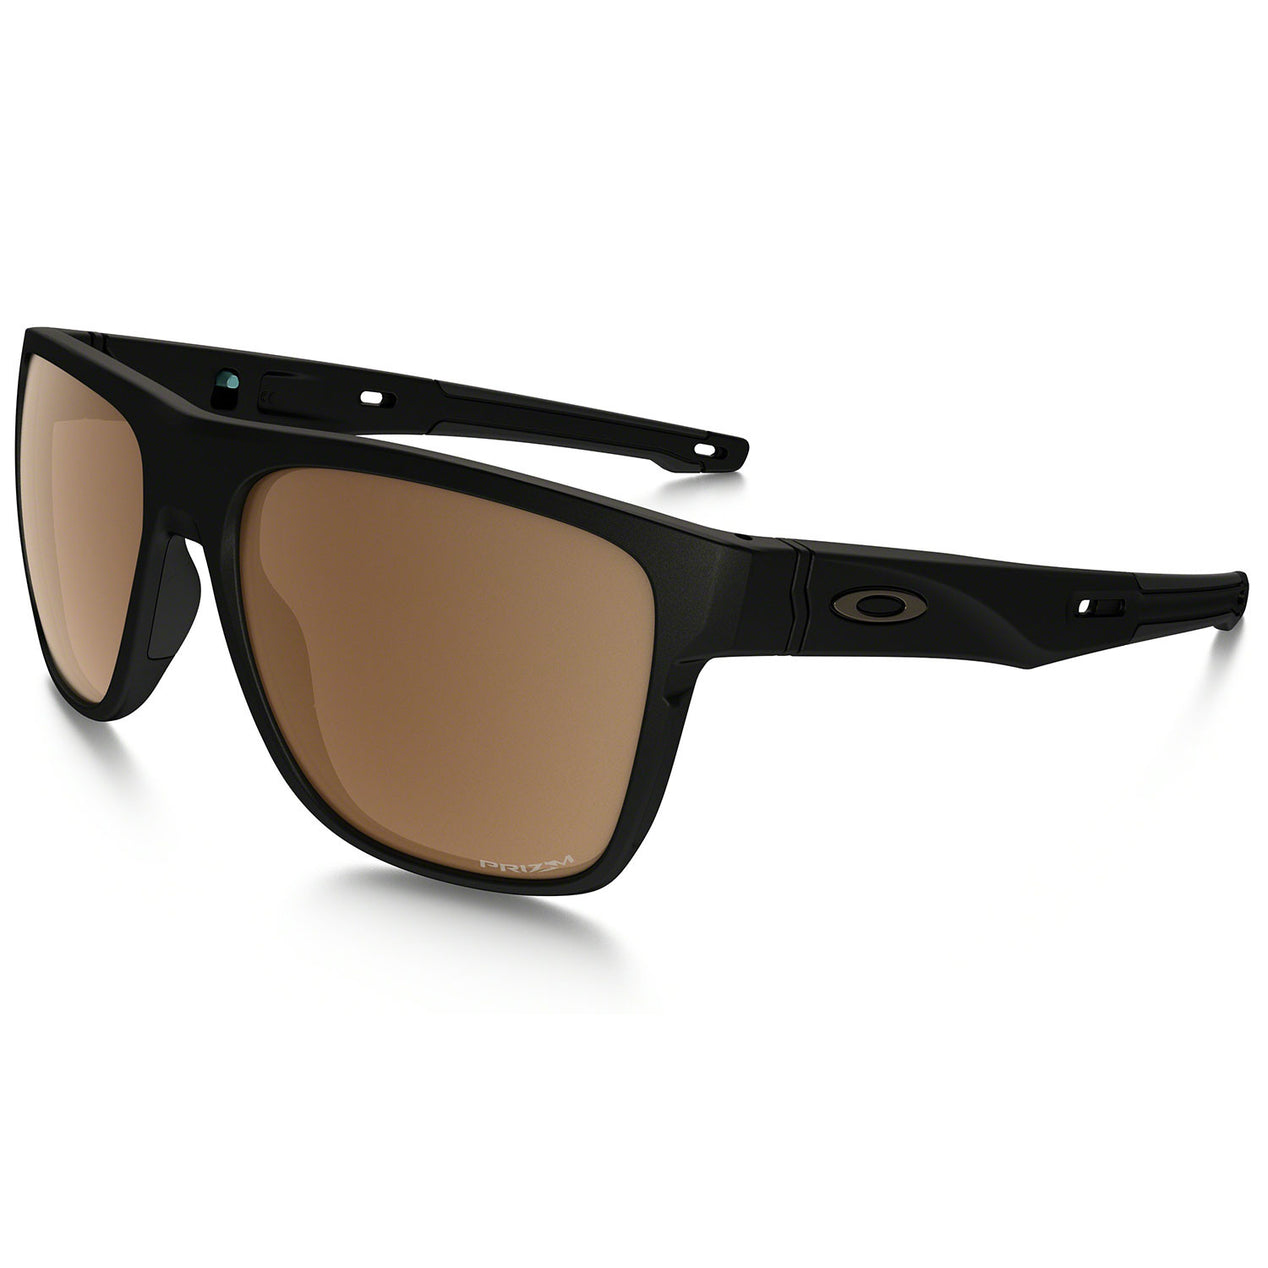 7af87b79a8d Oakley Crossrange XL - Matte Black - Prizm Tungsten Polarized Lens  Sunglasses